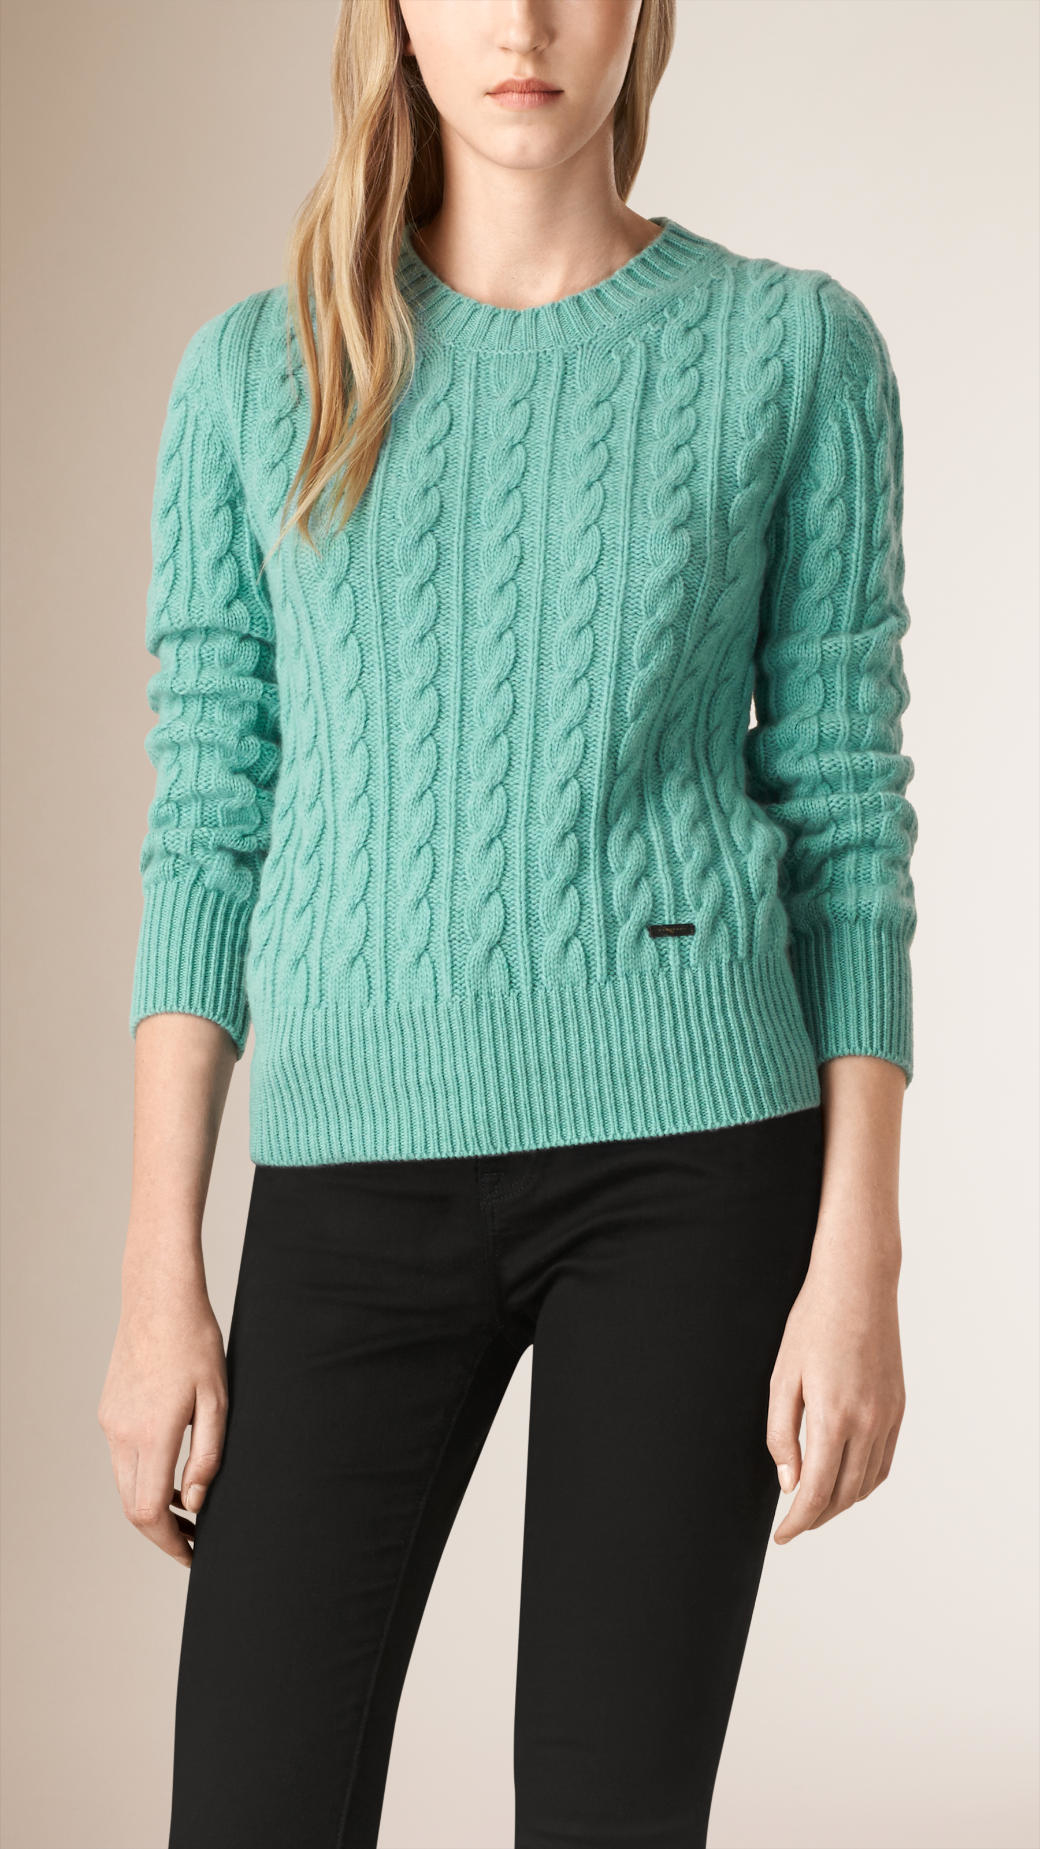 Lyst - Burberry Cable Knit Wool Cashmere Sweater Dusty ...